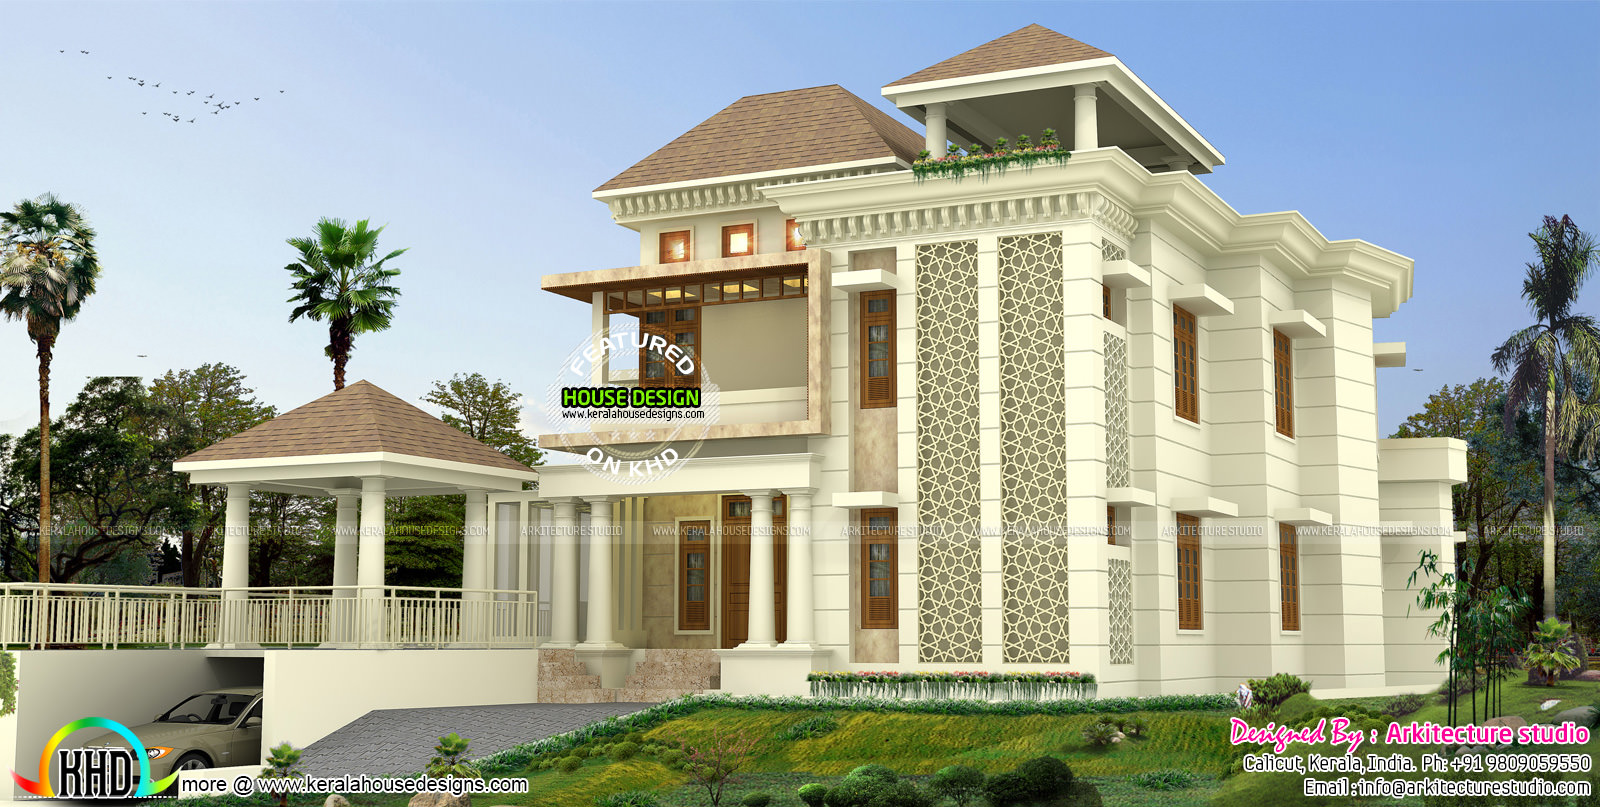 sq yd modern house architecture kerala home design floor plans architecture homes architecture house plans